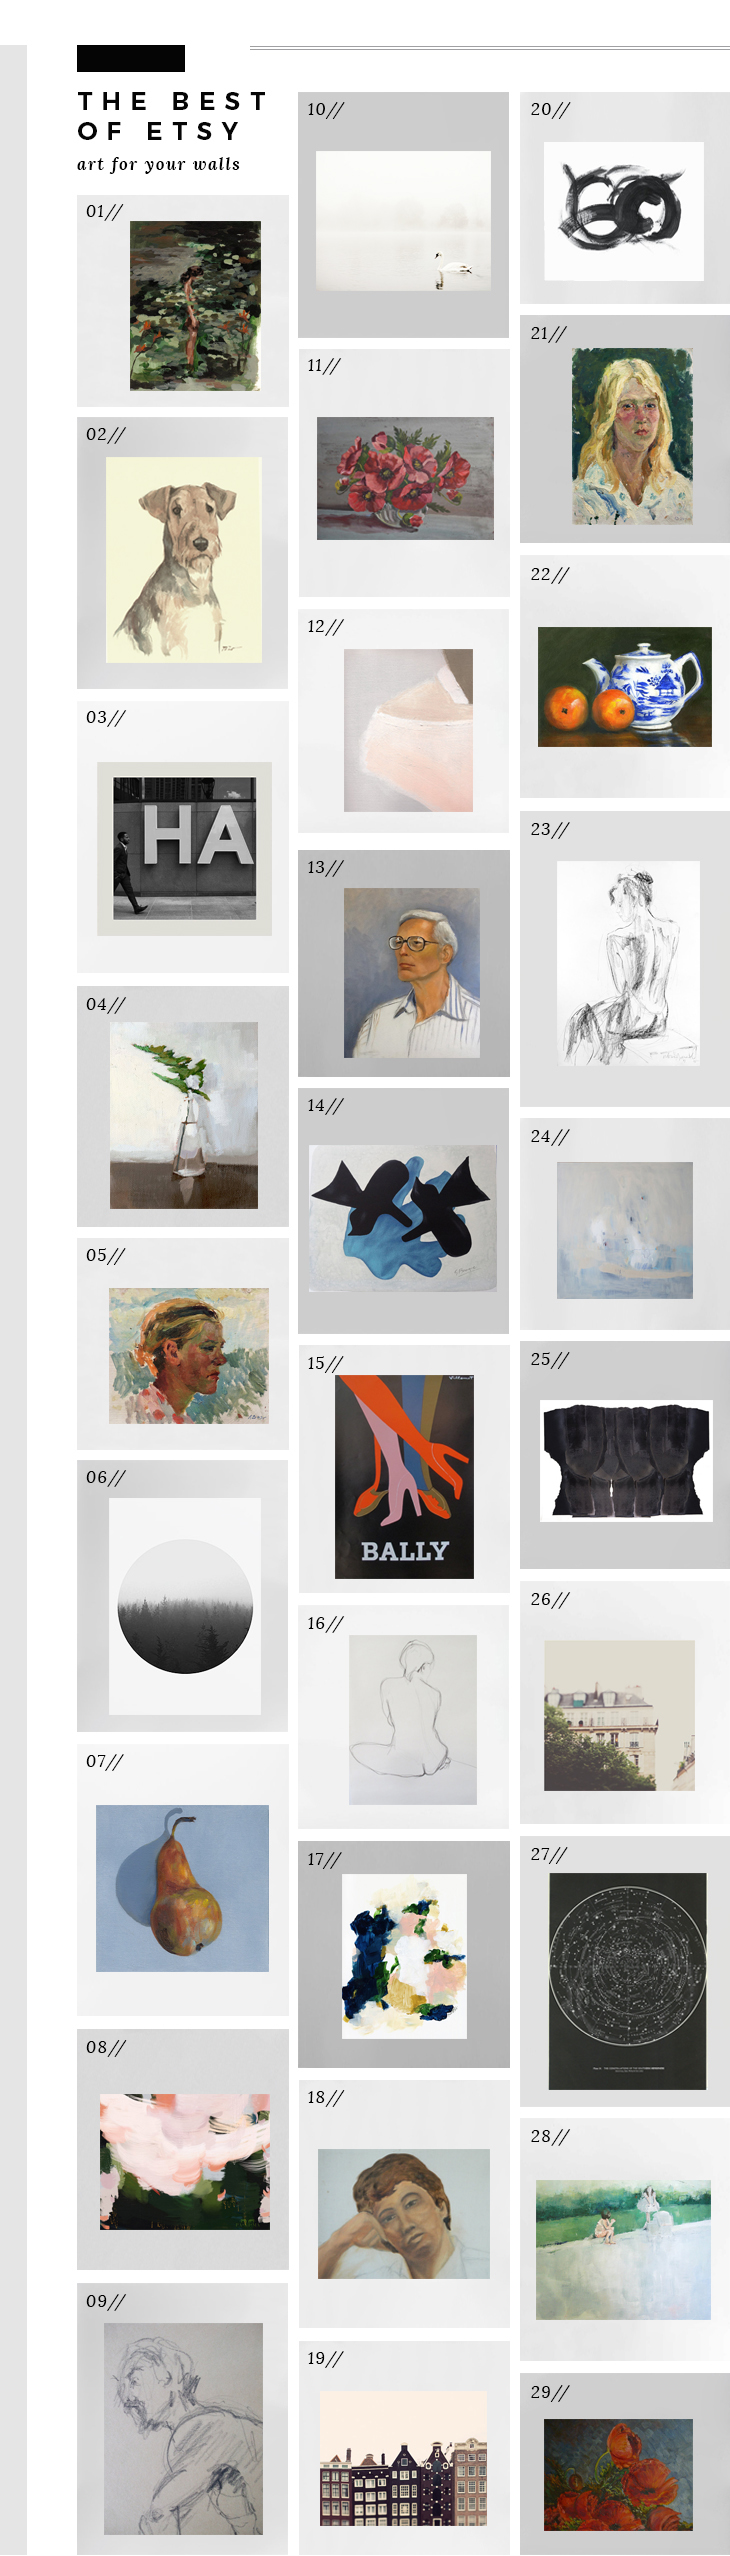 Best Wall Decor On Etsy : Best of etsy art for your walls room tuesday